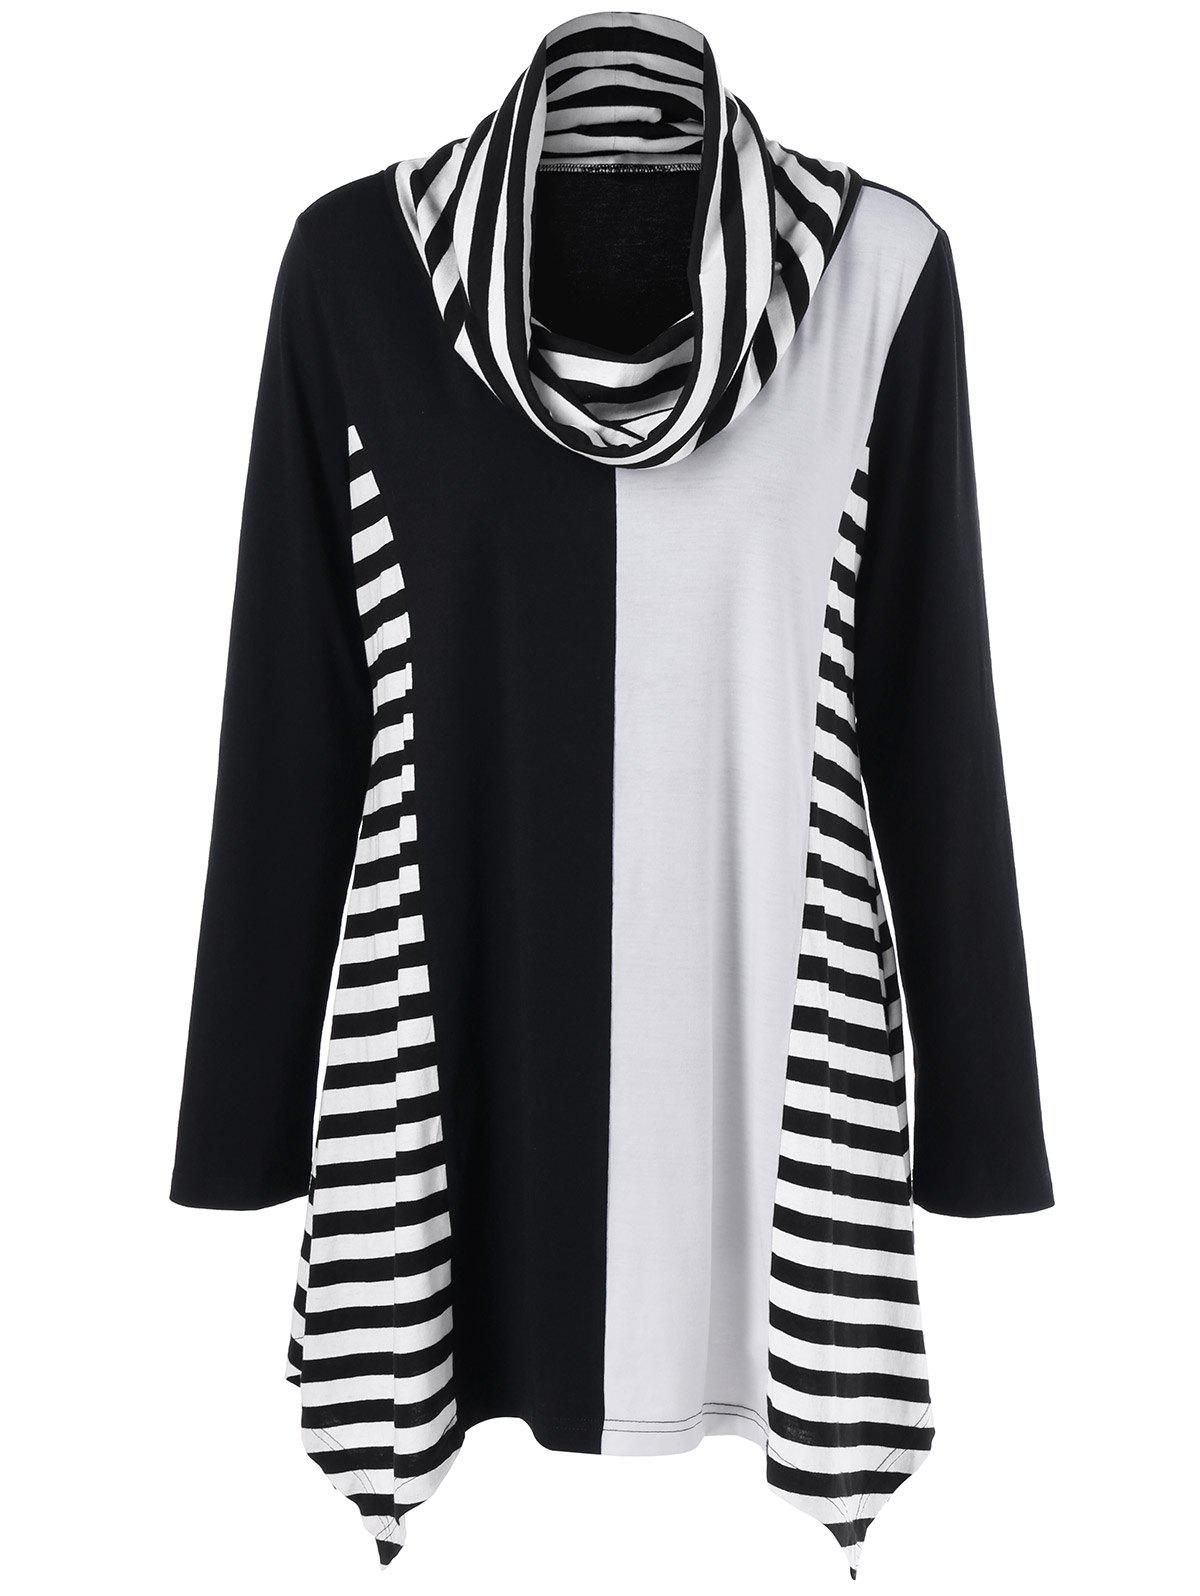 Cowl Neck Striped Trim Asymmetrical T-ShirtWOMEN<br><br>Size: 5XL; Color: BLACK AND GREY; Material: Polyester; Shirt Length: Long; Sleeve Length: Full; Collar: Cowl Neck; Style: Casual; Season: Fall,Spring; Pattern Type: Striped; Weight: 0.370kg; Package Contents: 1 x T-Shirt;